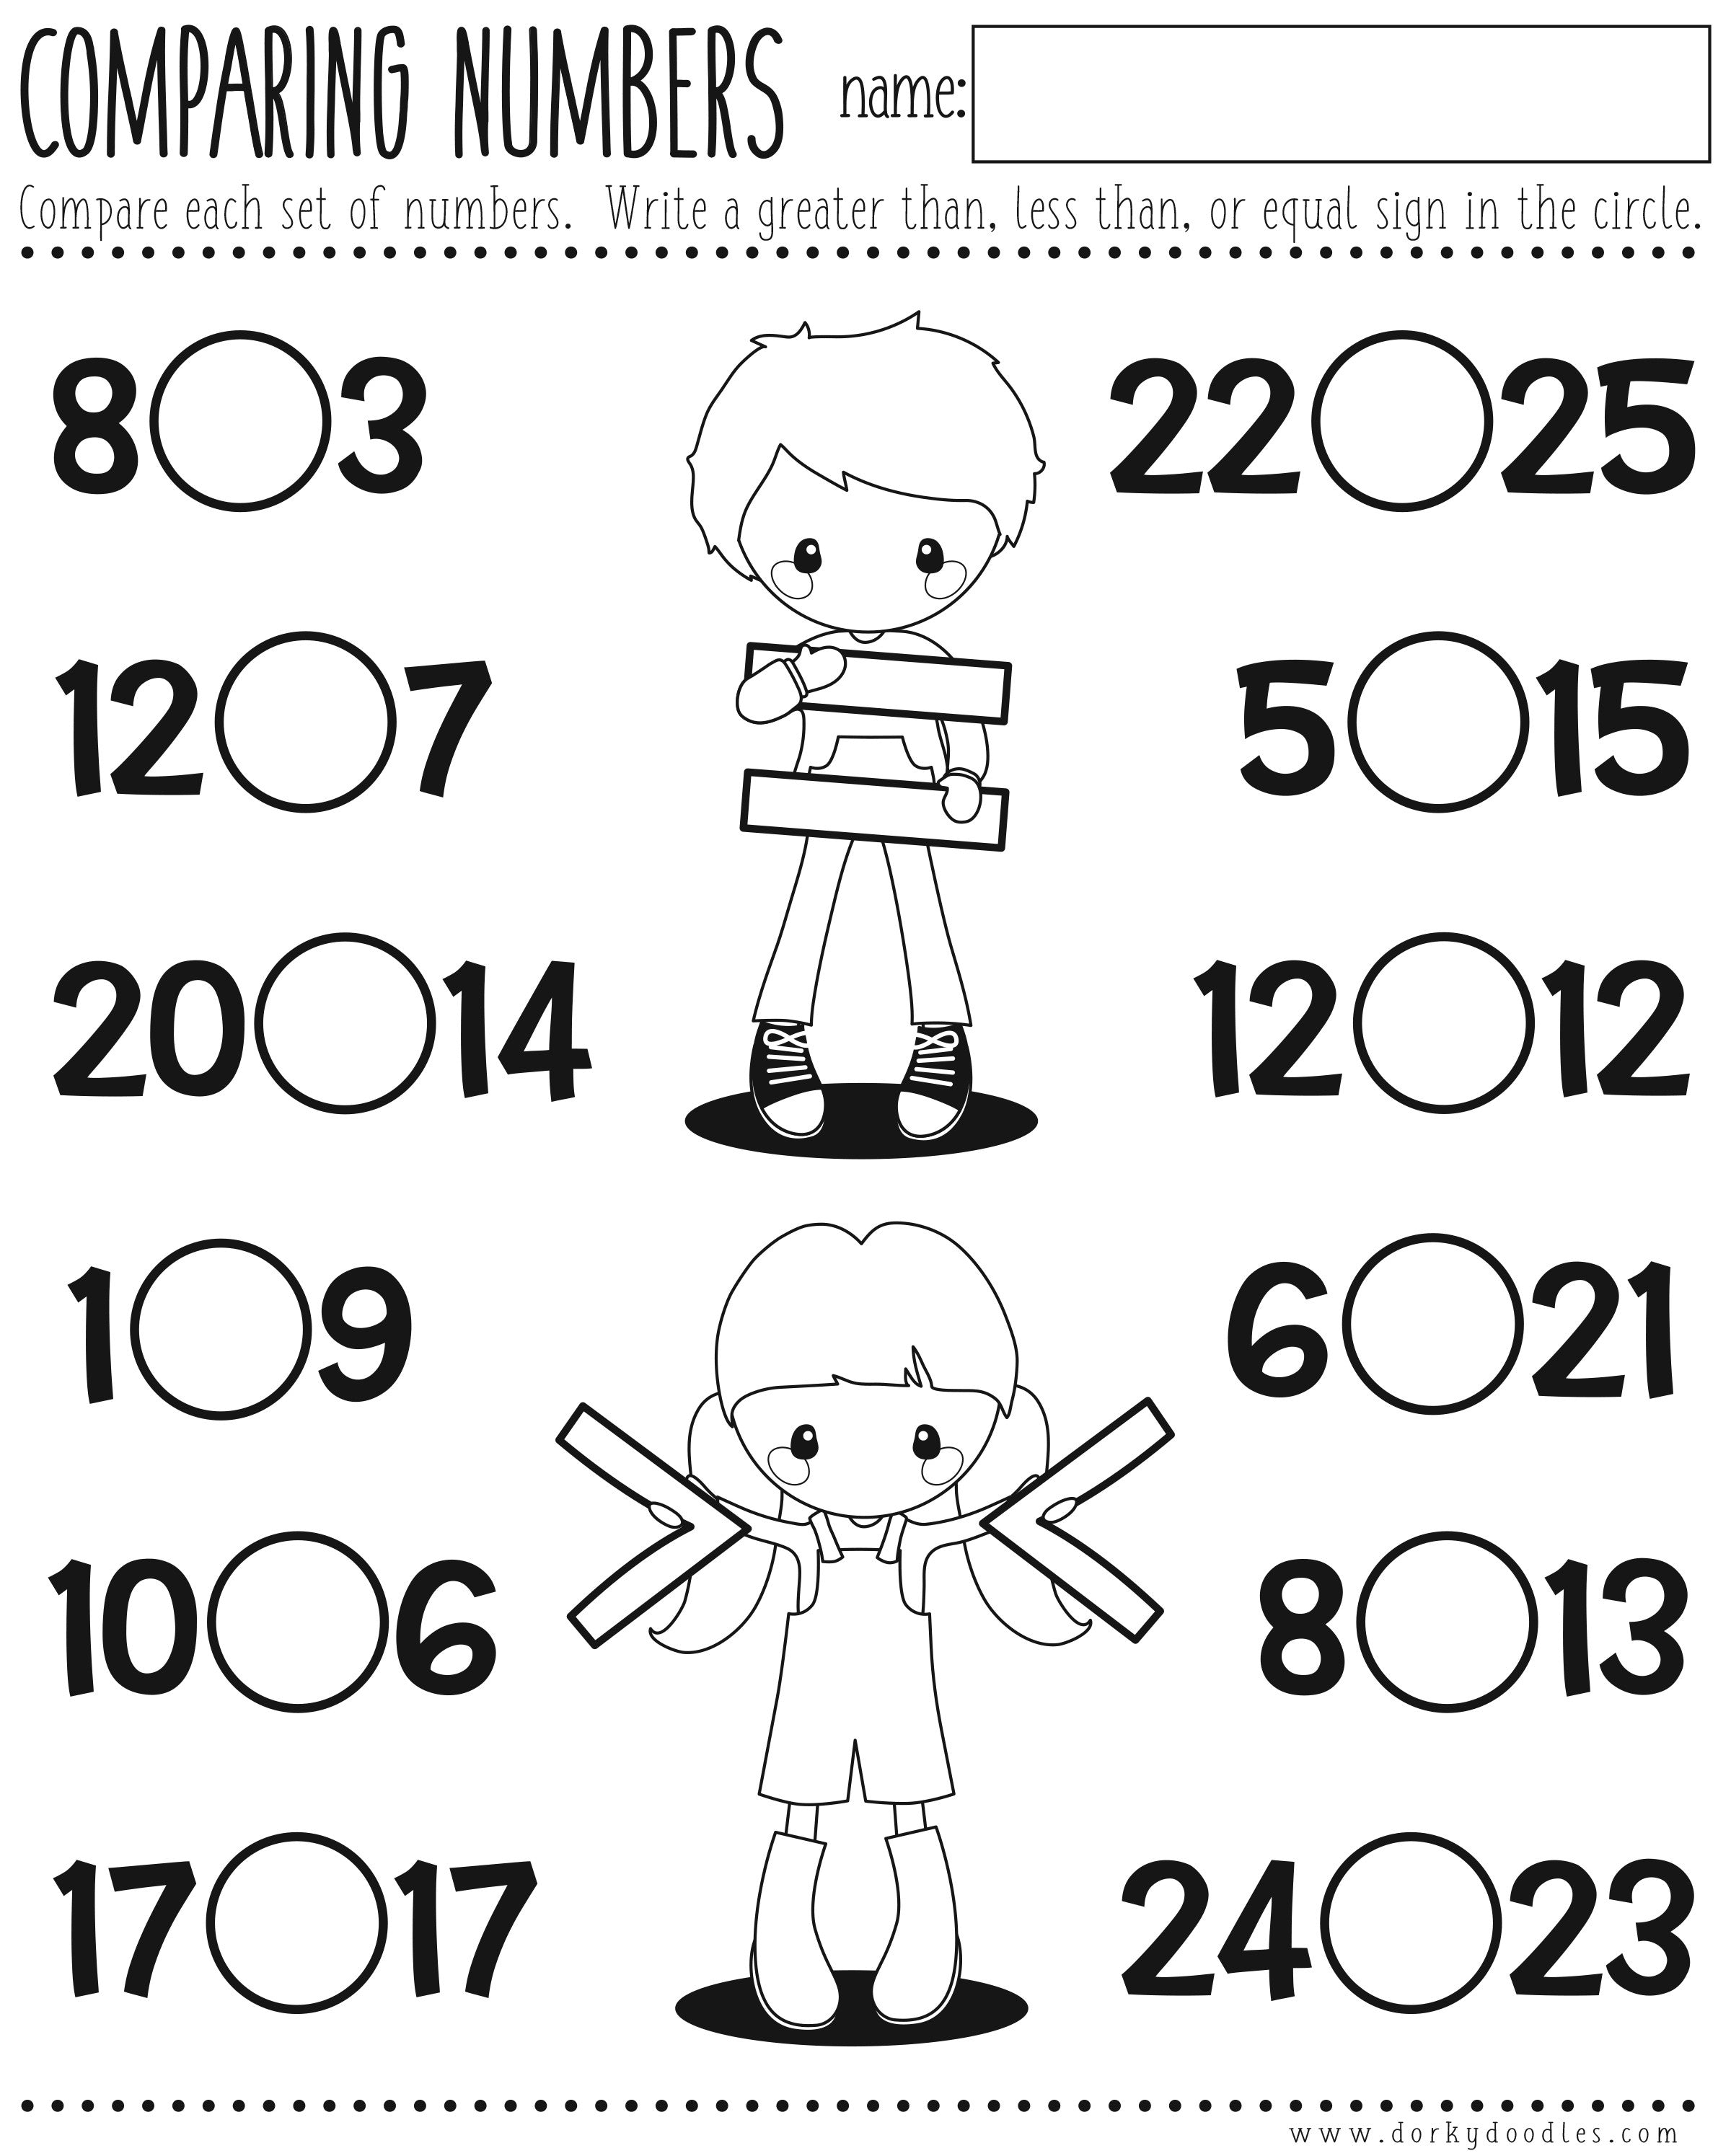 worksheet Greater Or Less Than greater or less than comparing numbers printable dorky doodles worksheet